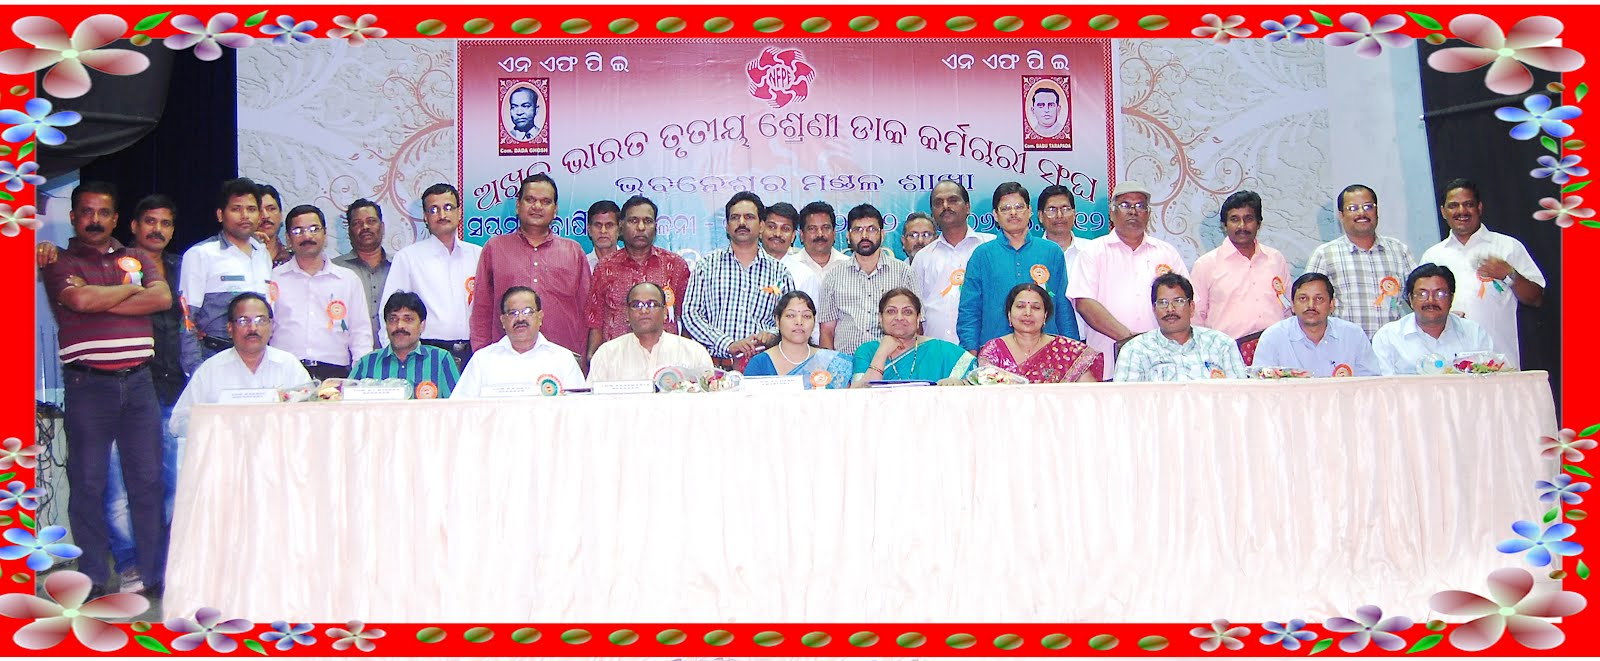 Elected Office Bearers and Working Committee members of 7th Biennial Conference held on 06.04.2012